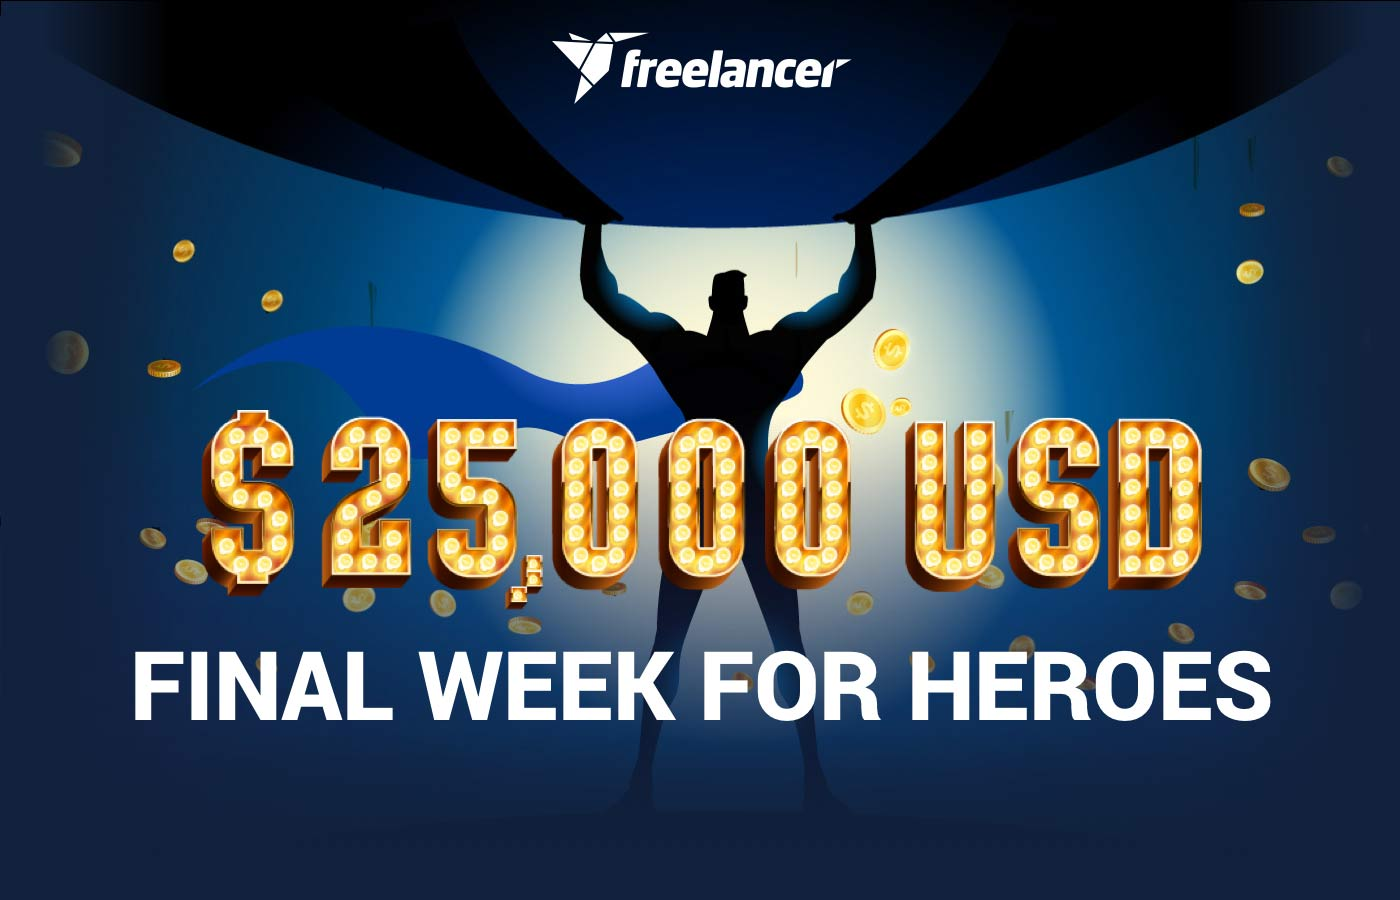 $25,000 Final Week To Be Our Hero